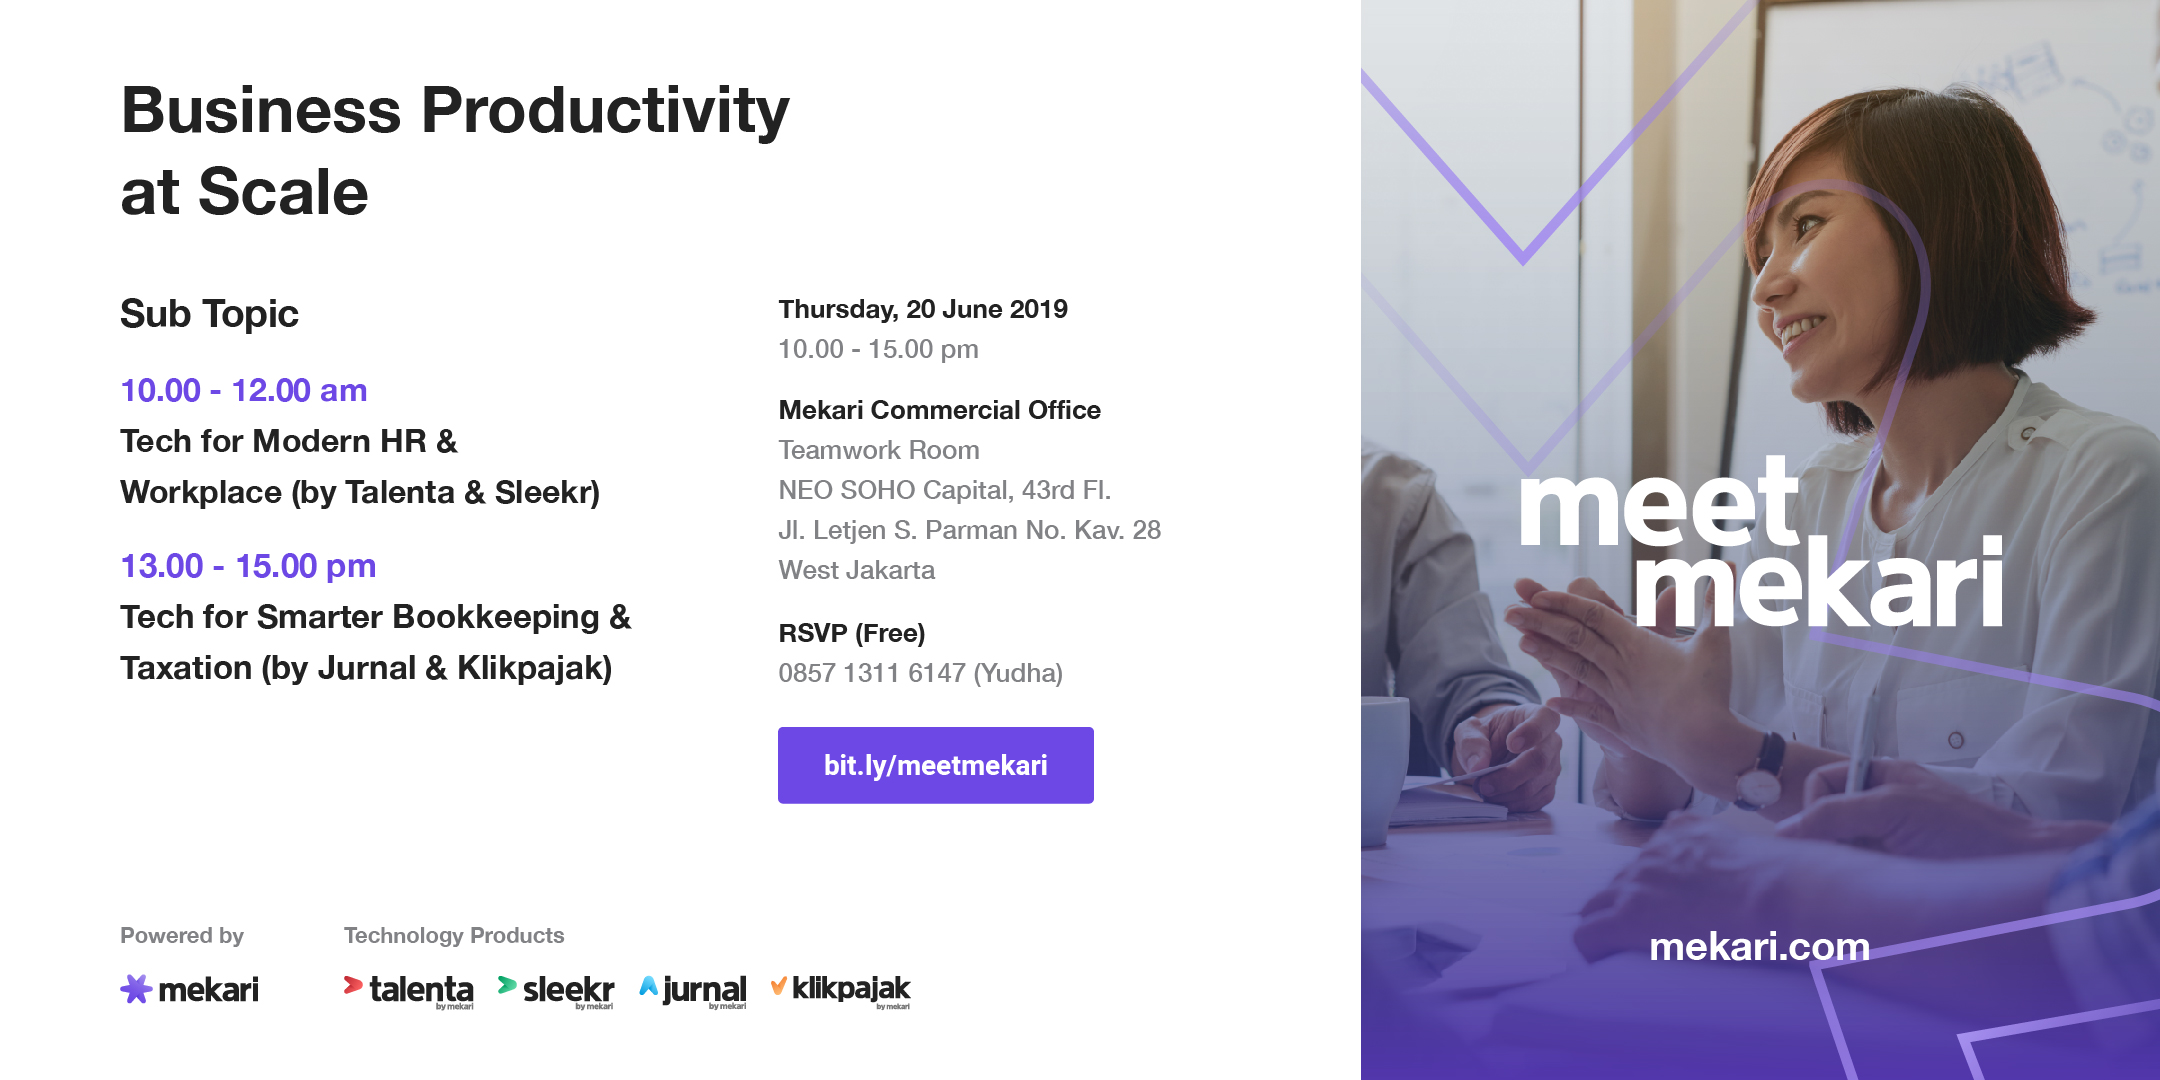 Meet Mekari: Business Productivity at Scale